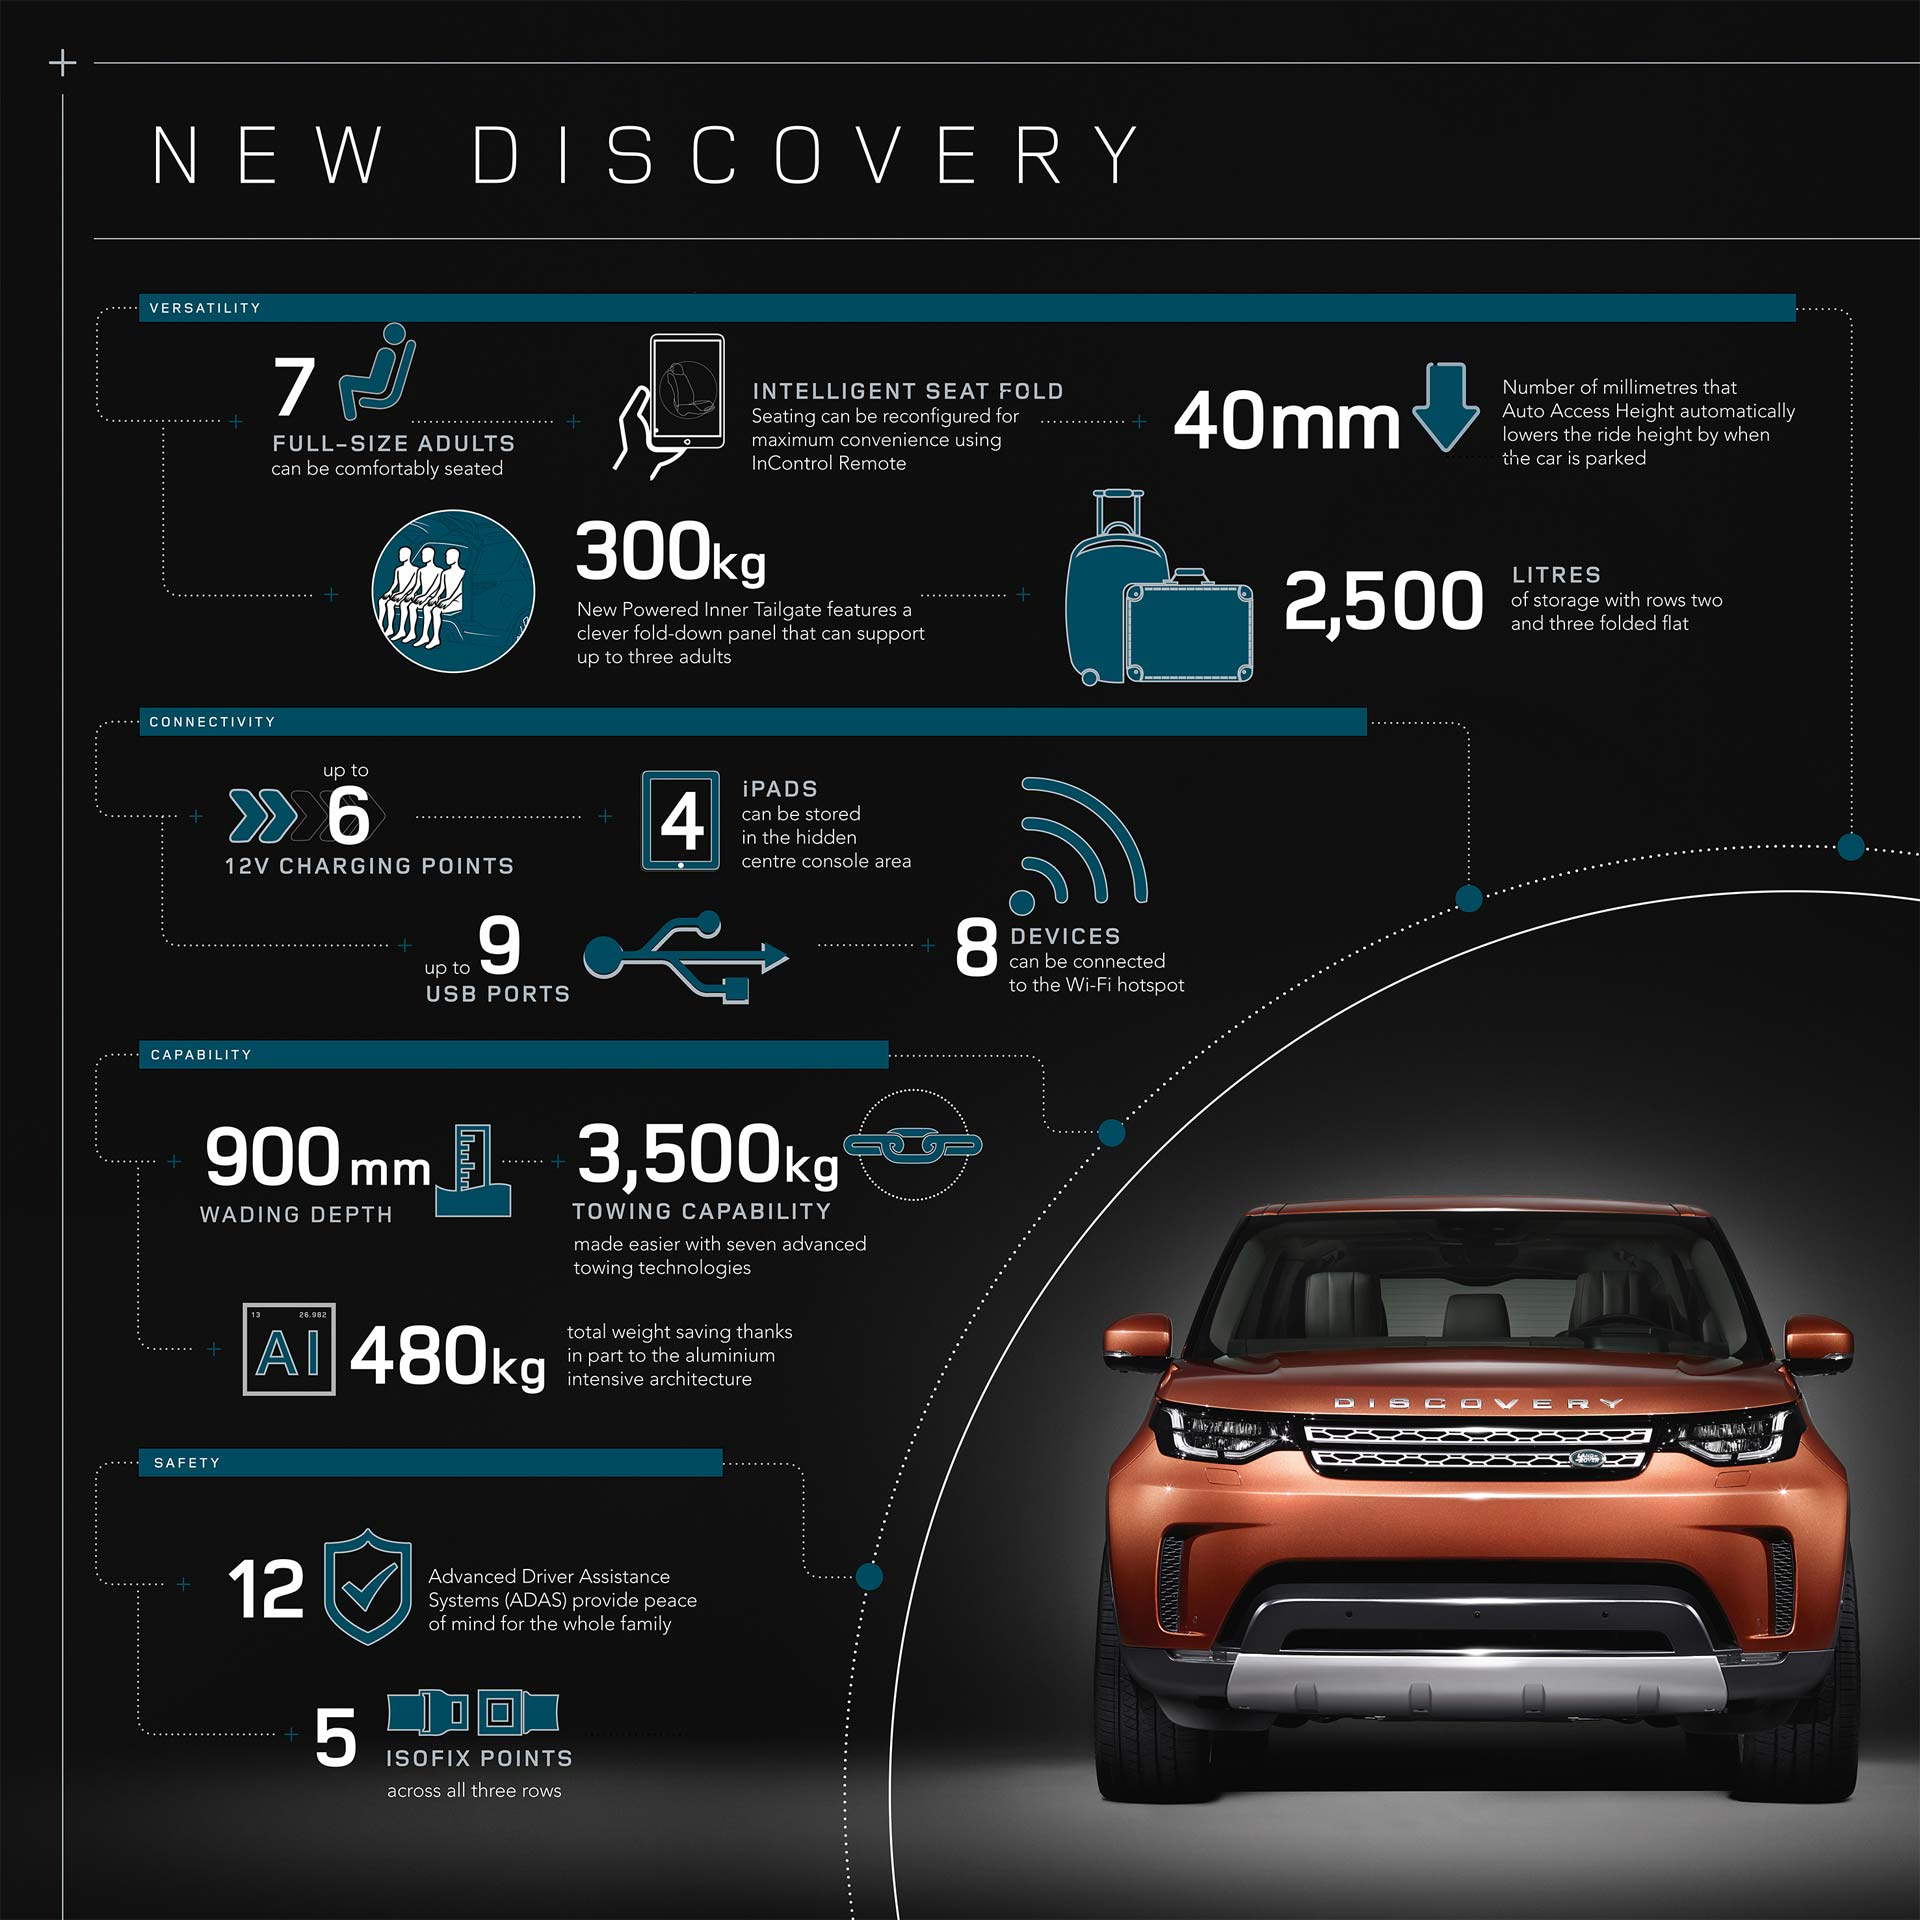 2017-Land-Rover-Discovery-infographic-details